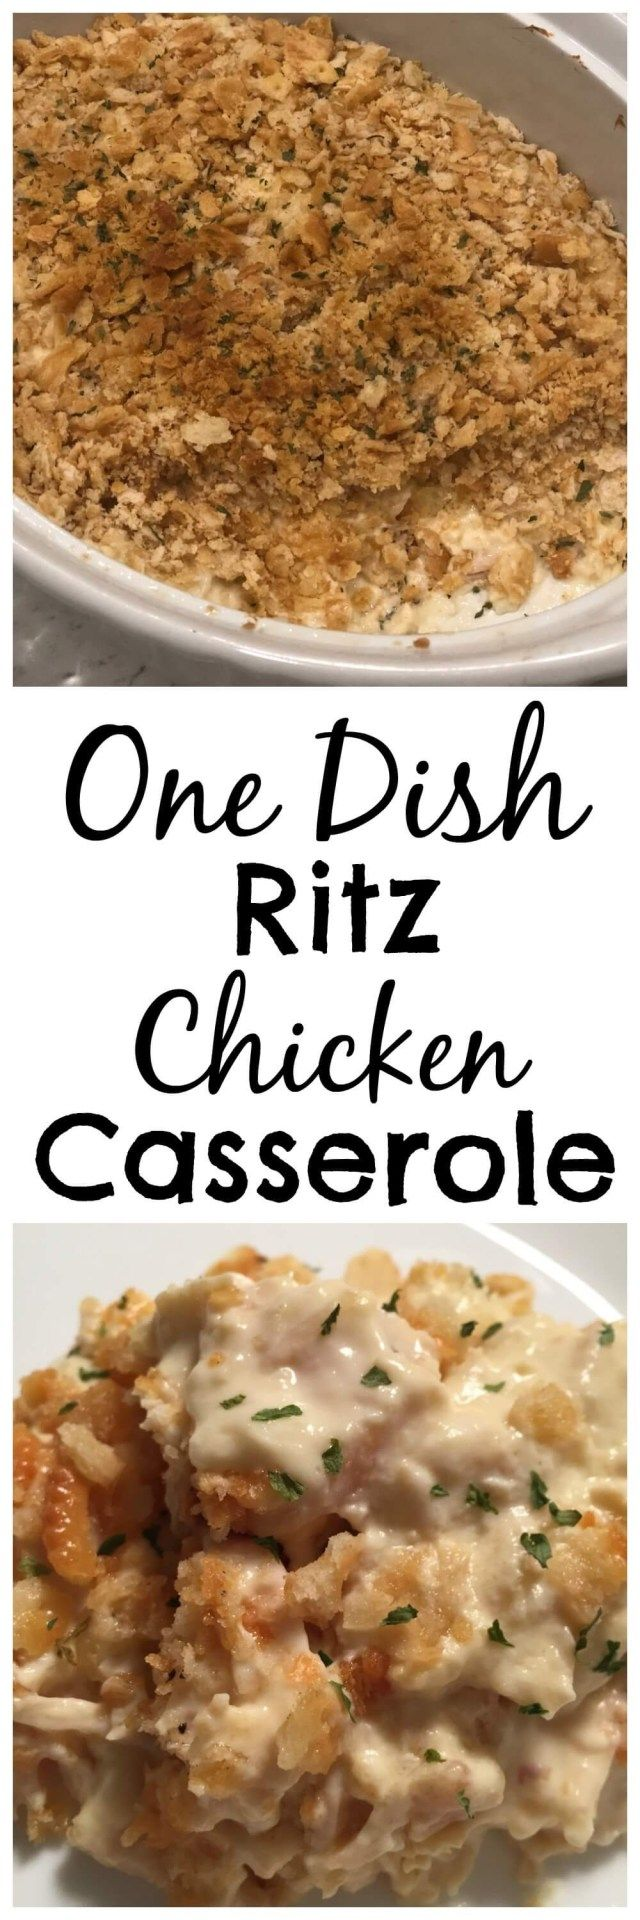 One Dish Ritz Chicken Casserole